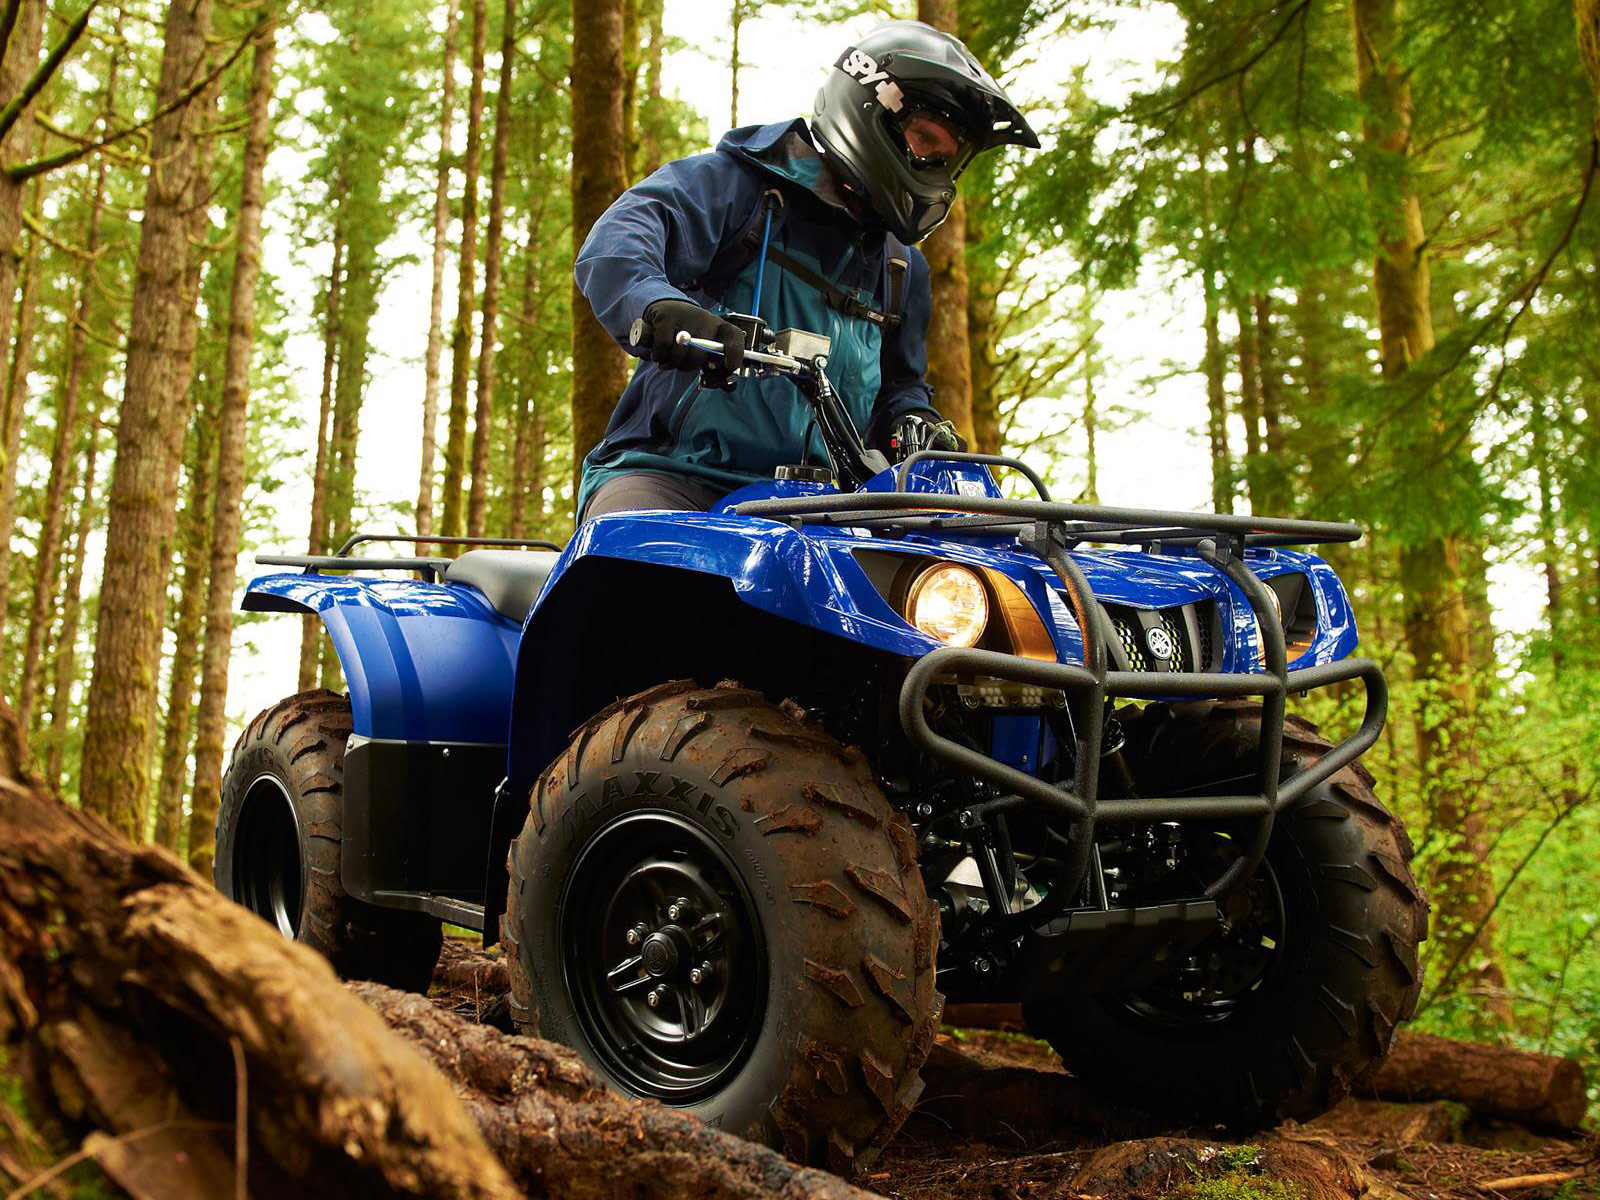 Rn 4739 Yamaha Grizzly 350 Wiring Diagram Download Diagram